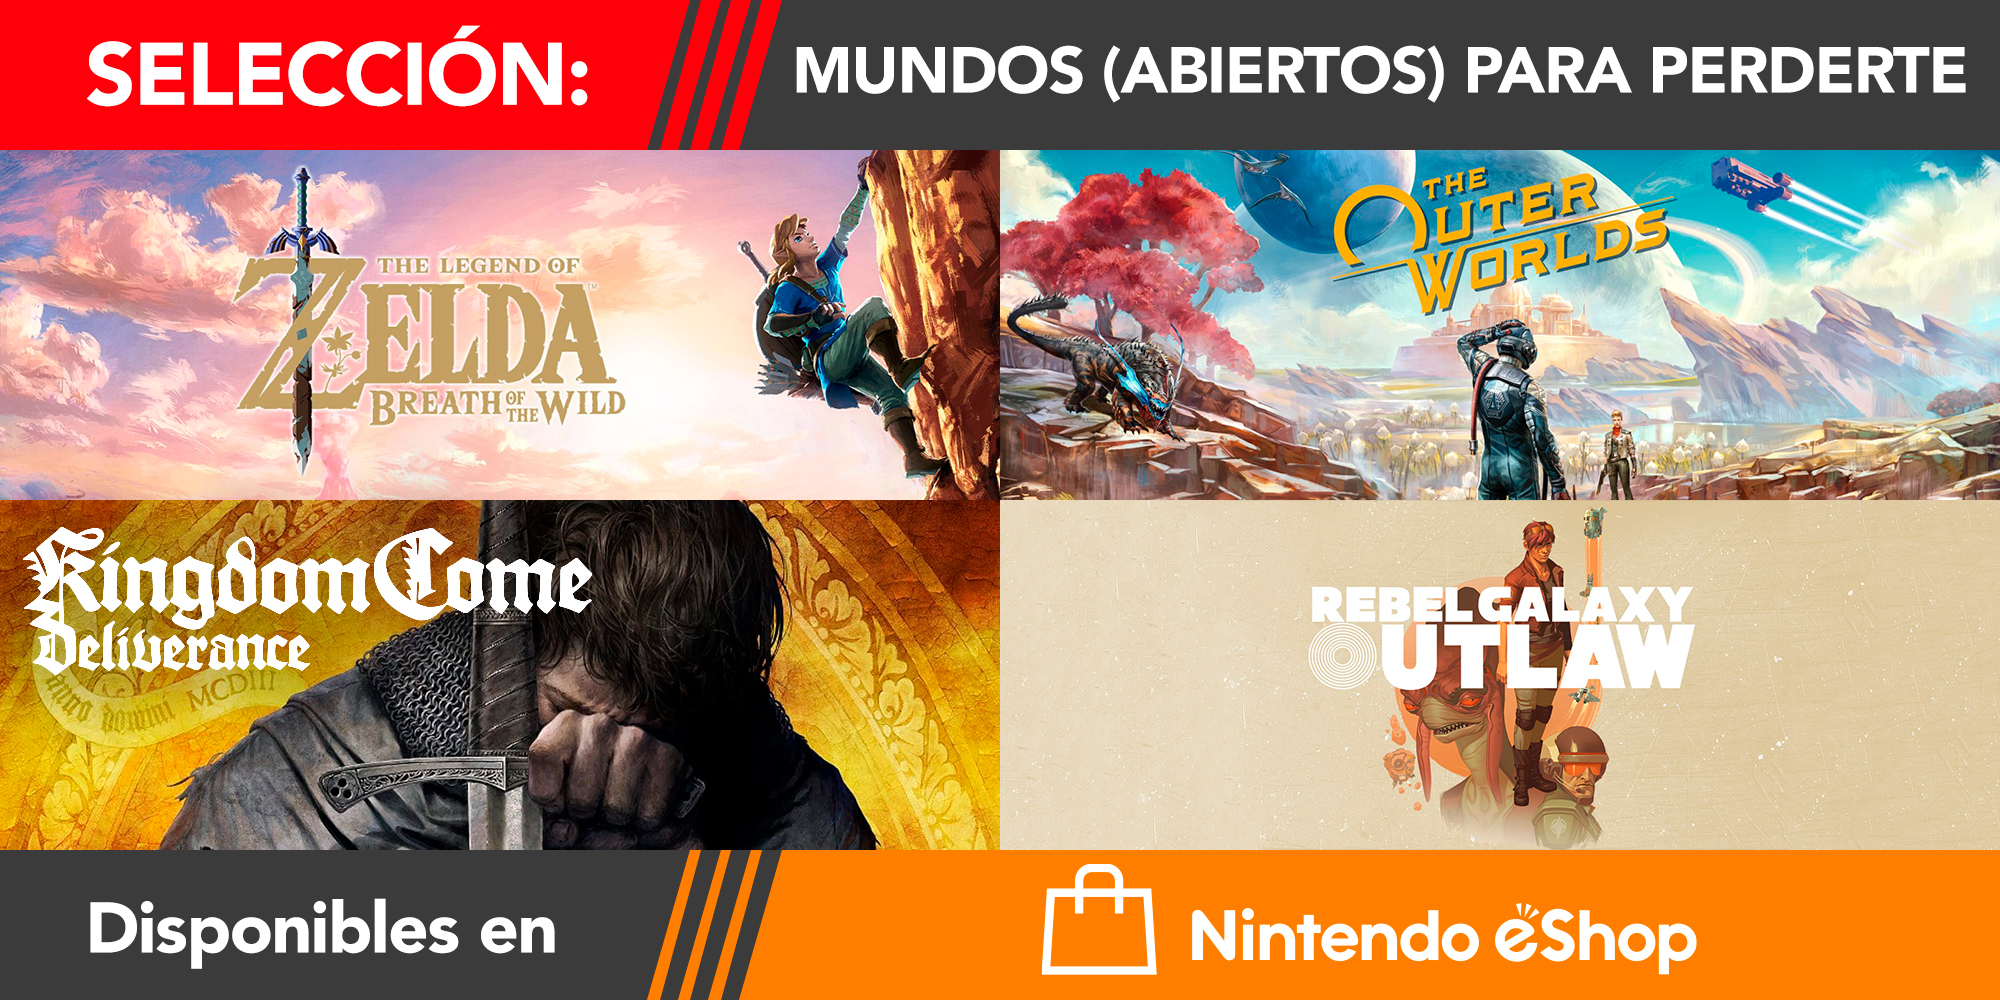 Nintendo vuelve a poner a Kingdom: Come Deliverance en Switch